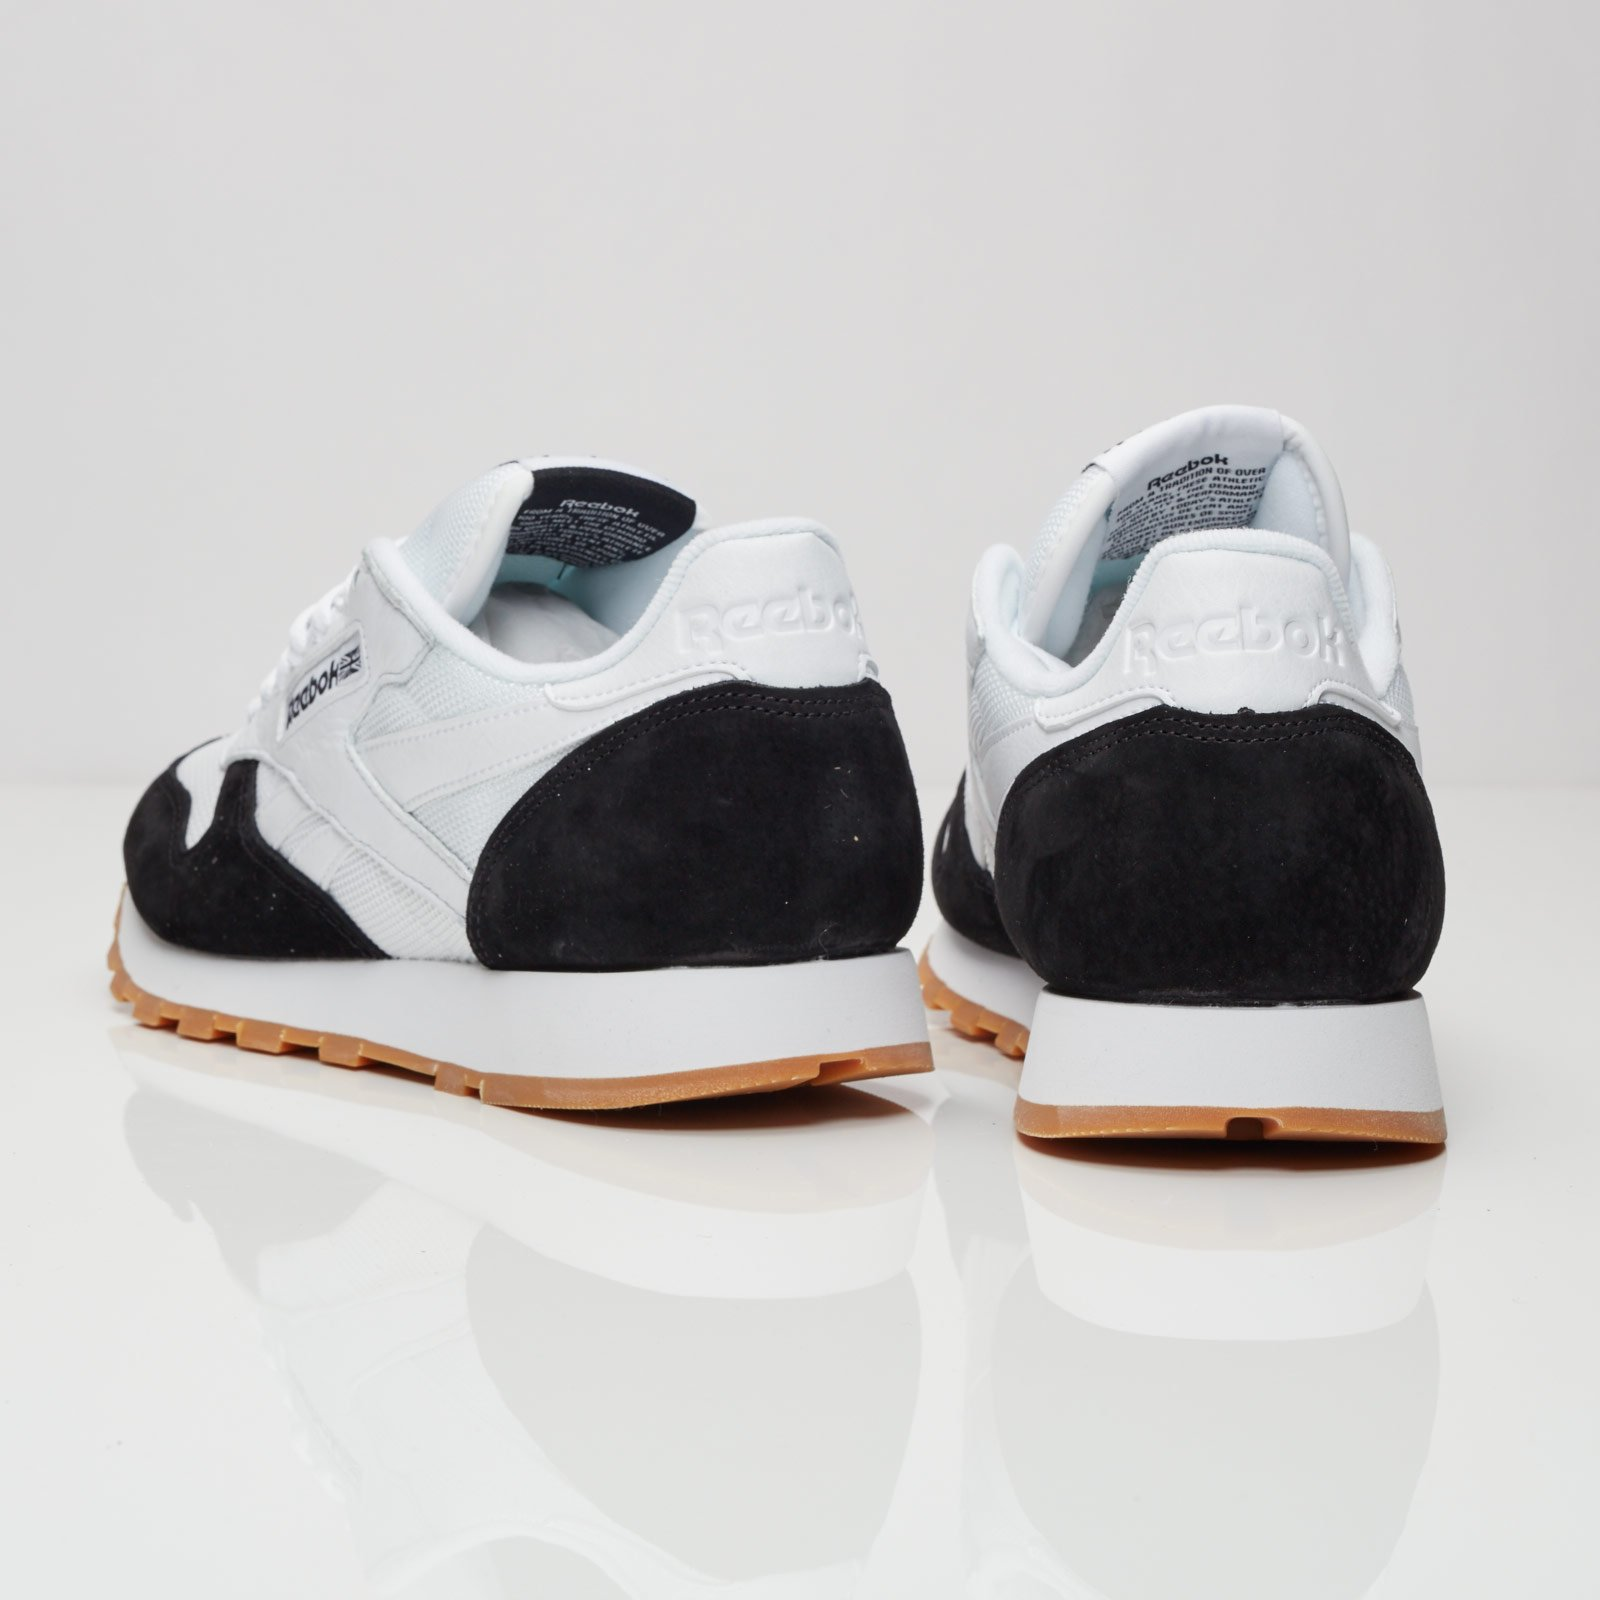 Reebok Ar1894 Spp Sneakersnstuff Leather Sneakers Classic Ggyqrxp E2IWH9DY